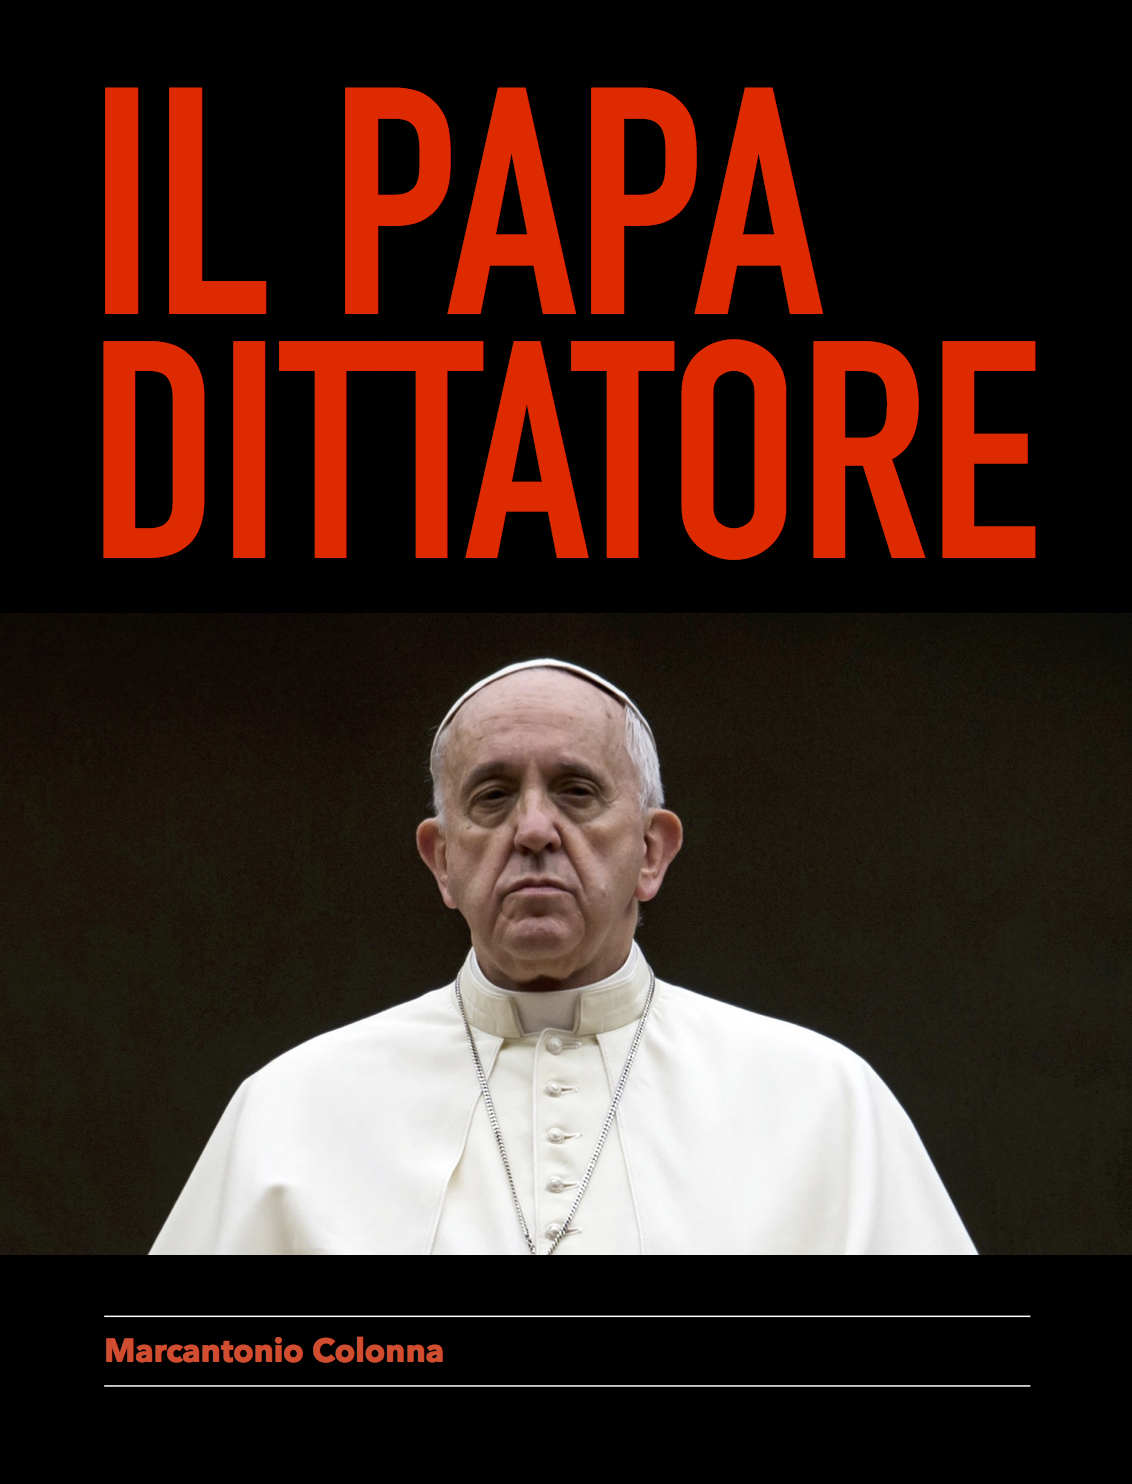 An ebook was just released the other day. The title is Il Papa Dittatore  and was written by Marcantonio Colonna. There is also an English edition,  ...